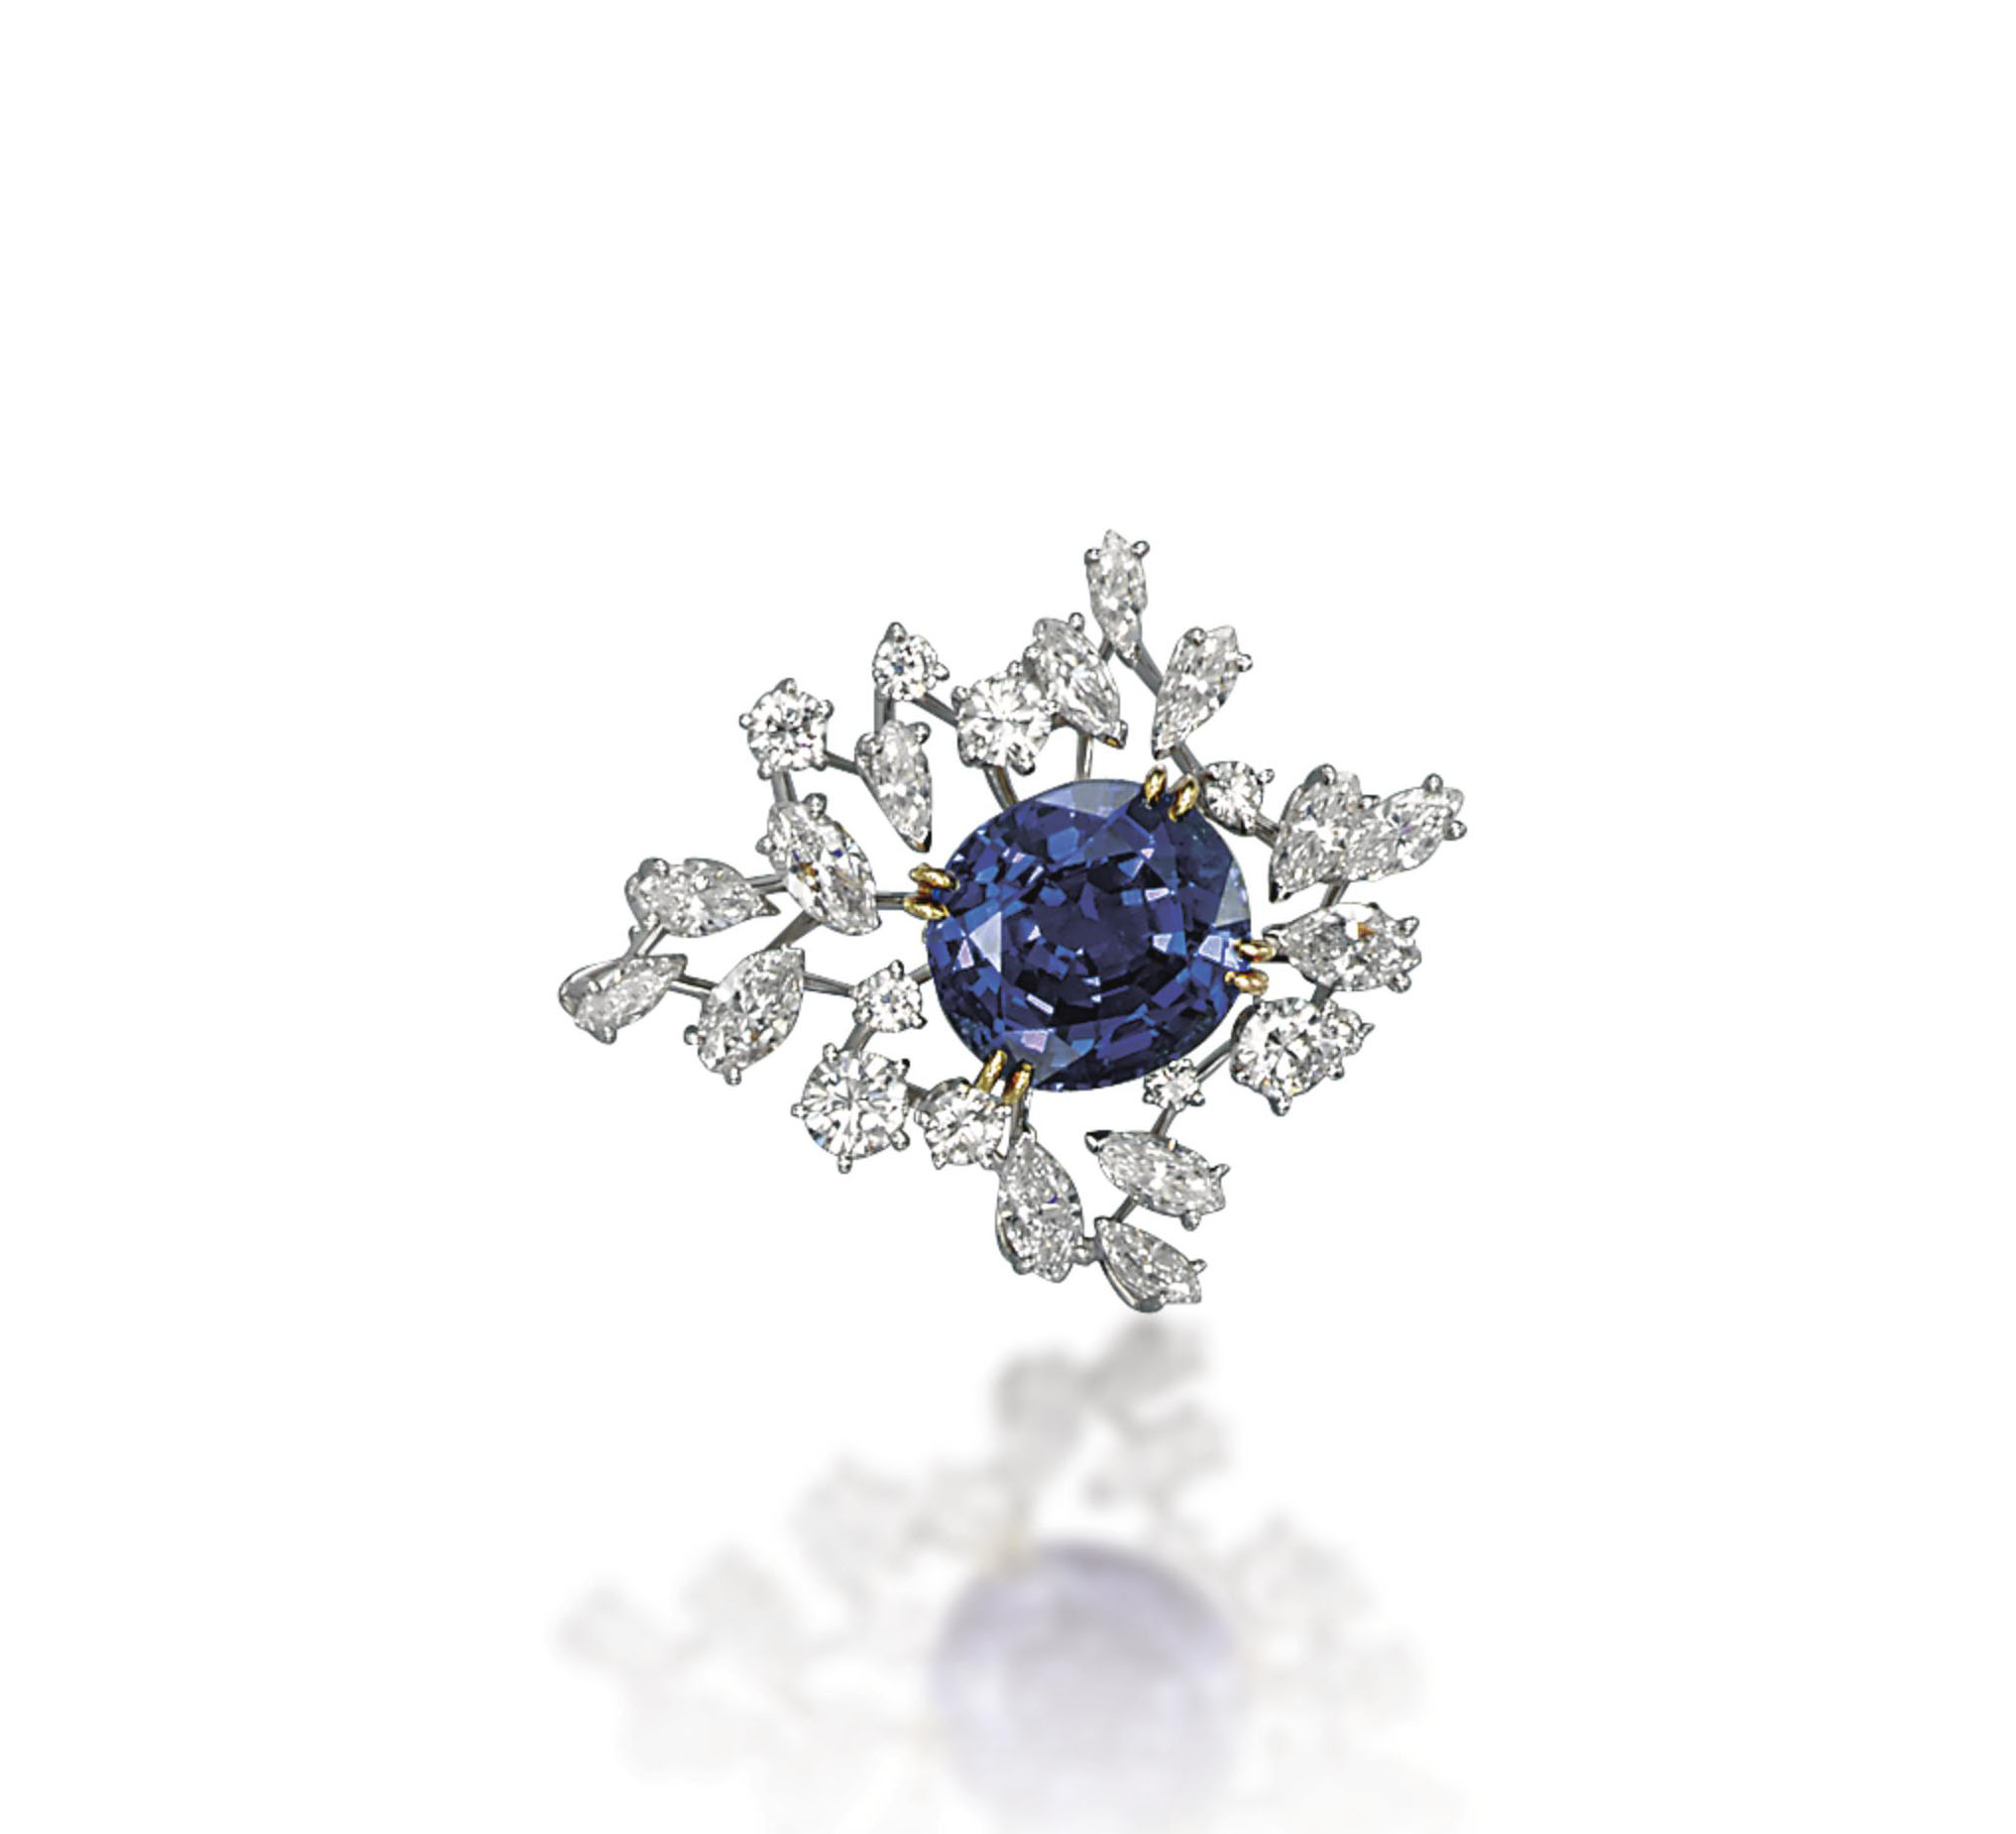 A SAPPHIRE AND DIAMOND BROOCH, BY MEISTER